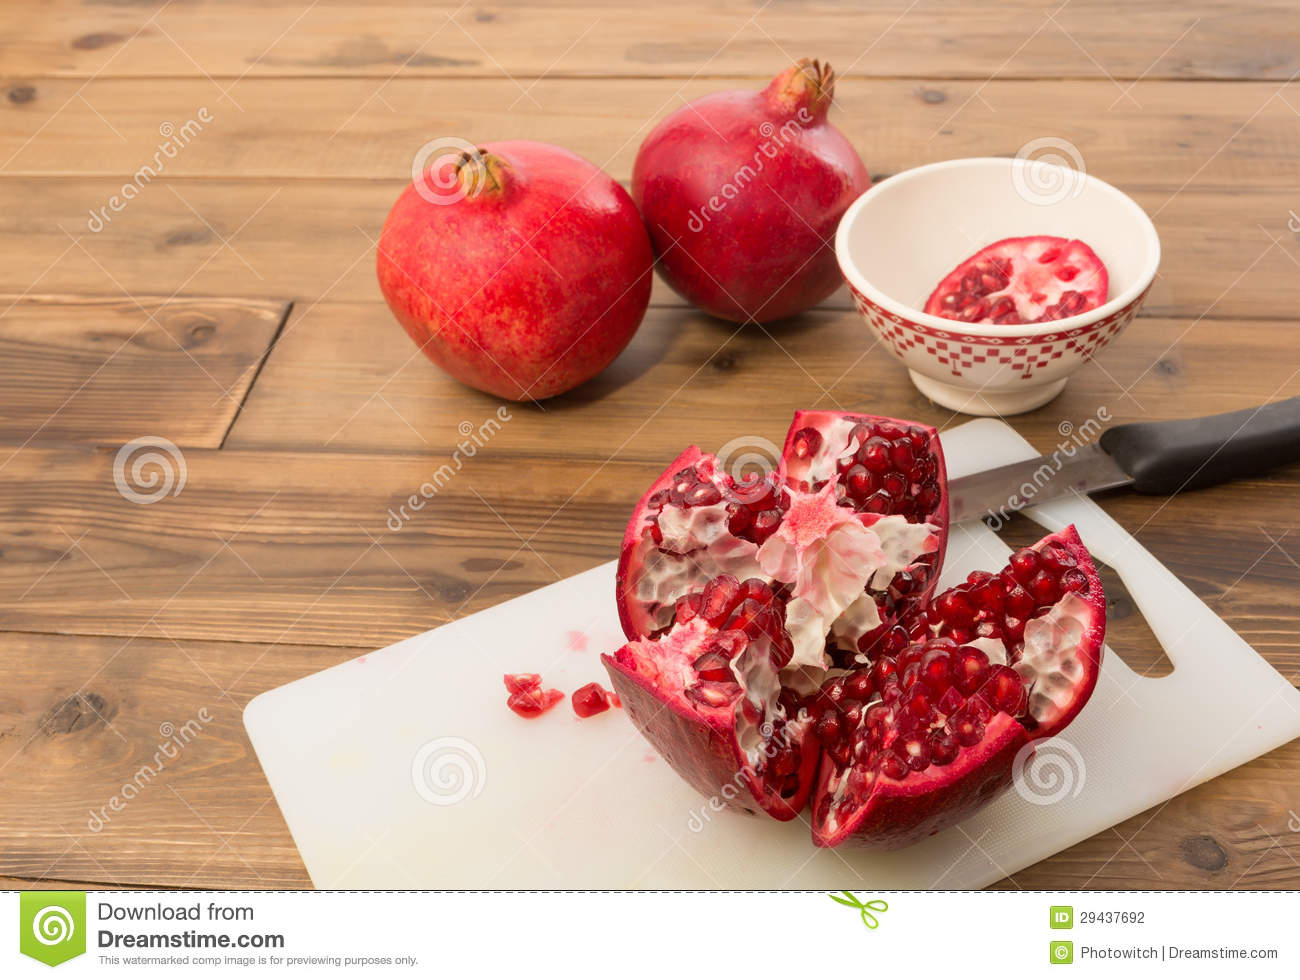 Seeds and arils of a pomegranate